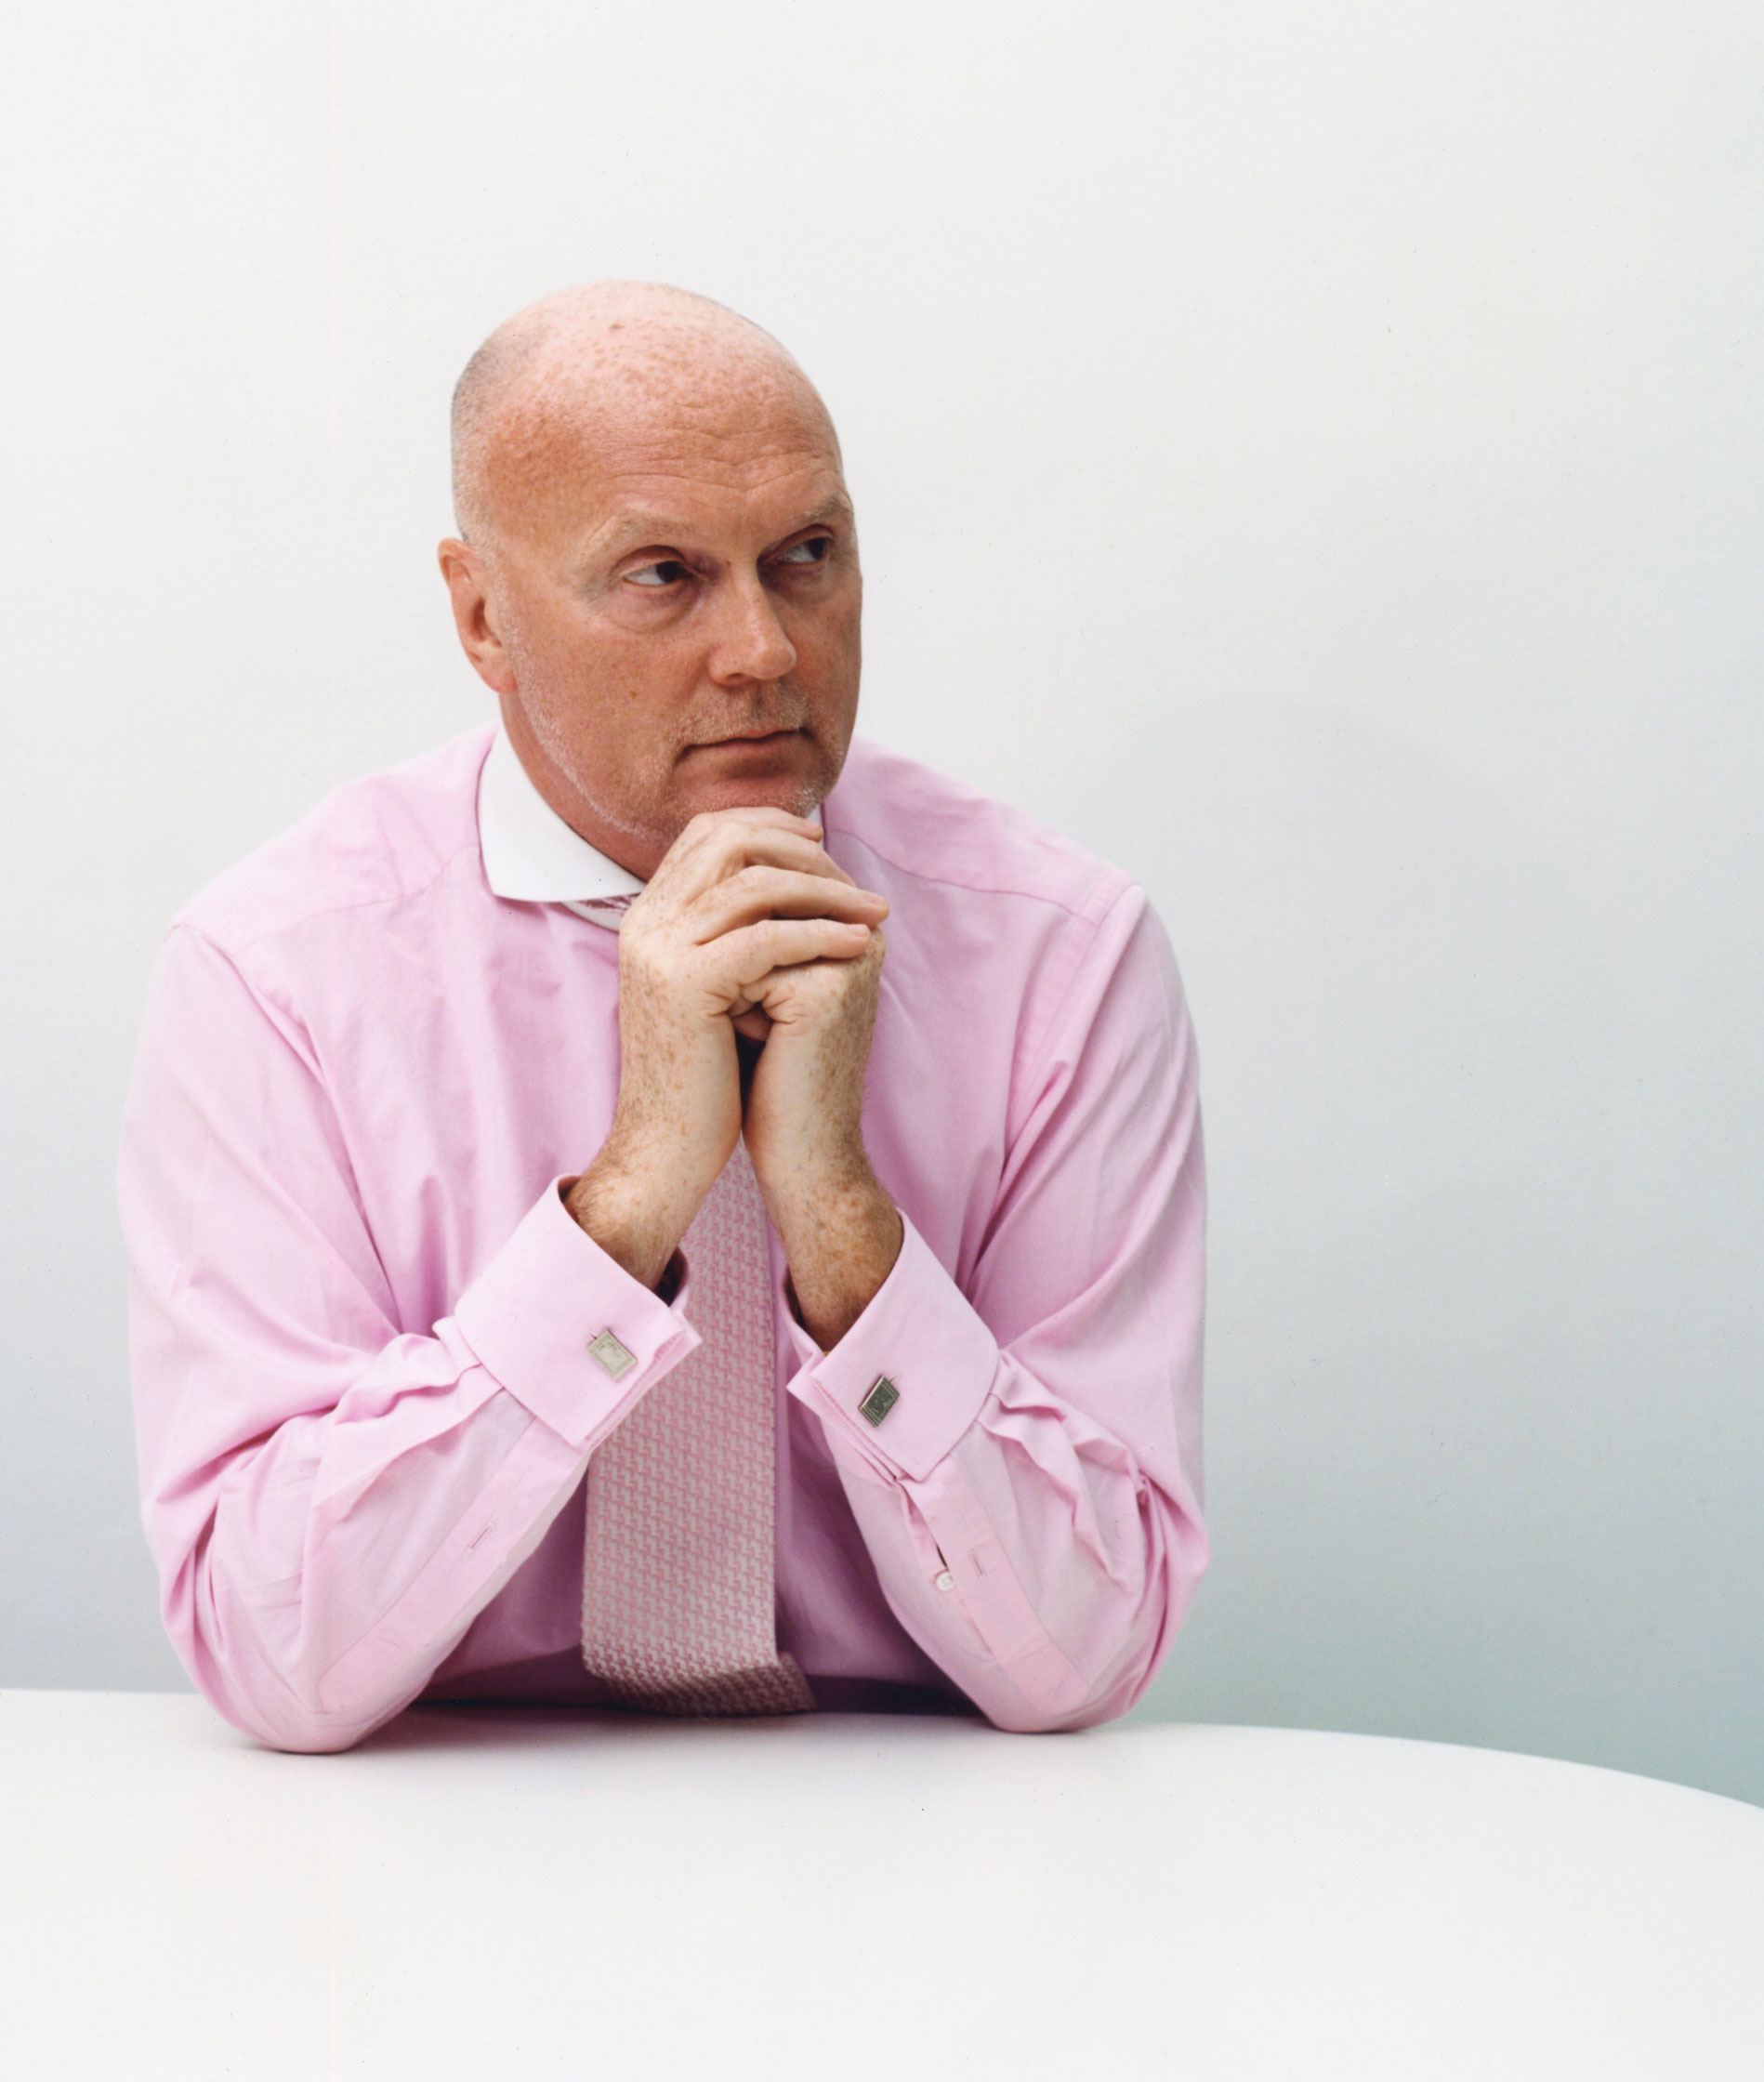 Allan Leighton in pink shirt